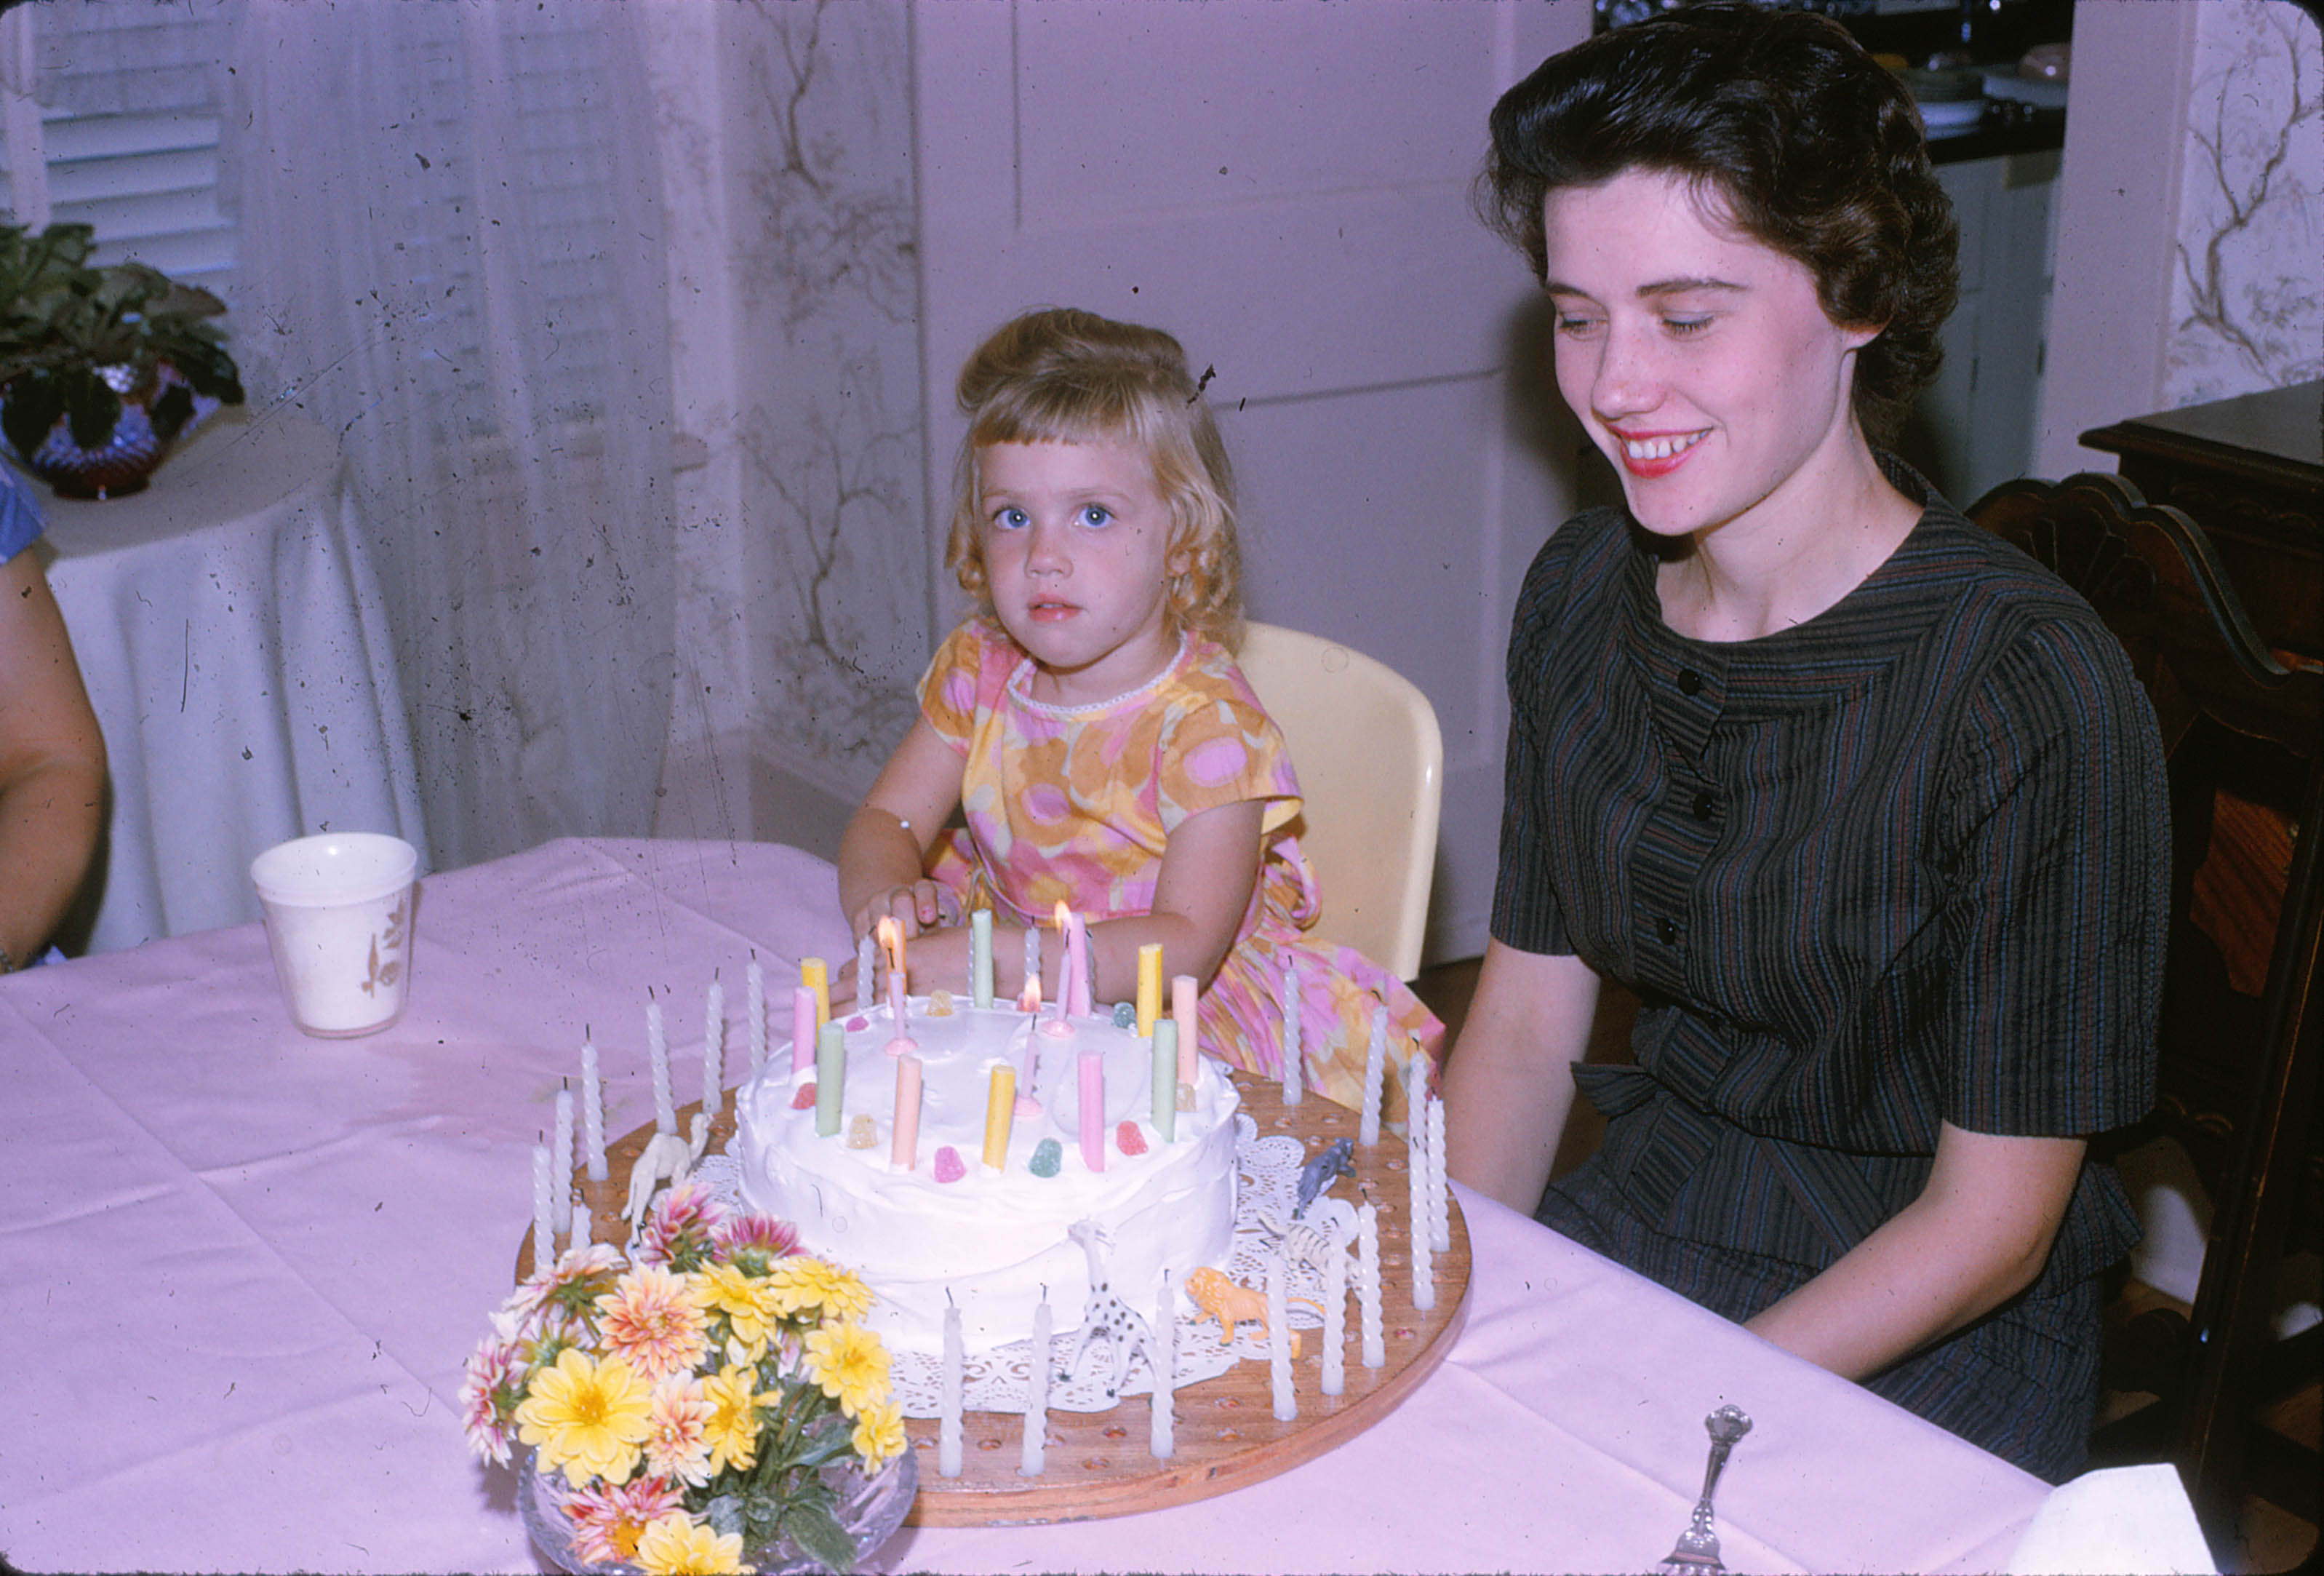 Mom and I share the same birthday. Here I'm 3, she's 26.